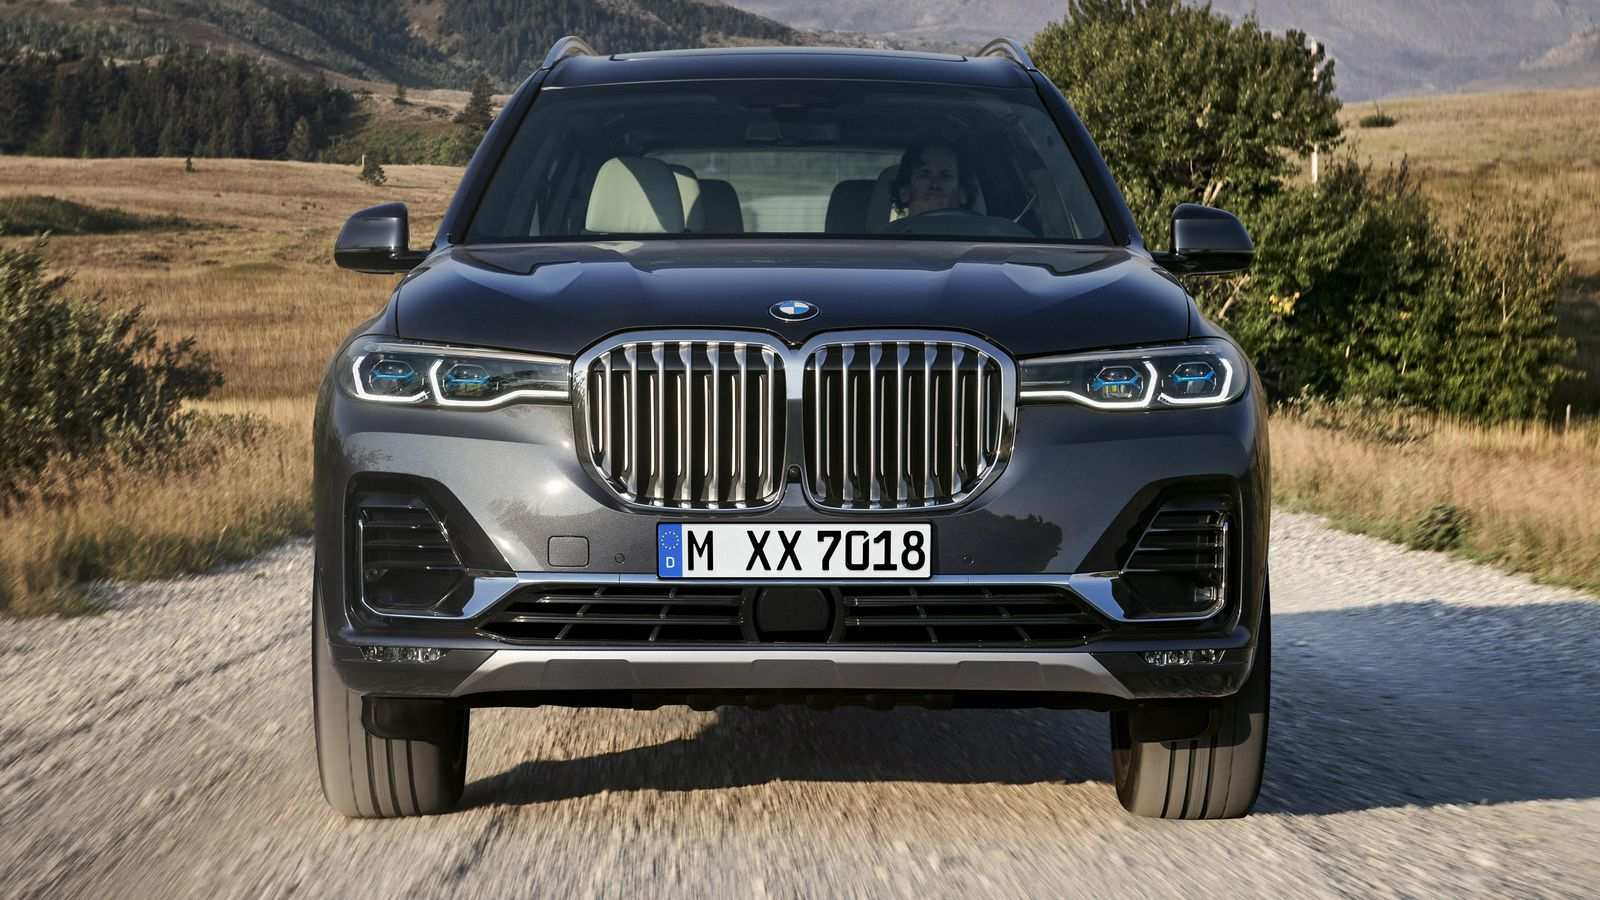 26 All New 2019 Bmw Suv Picture